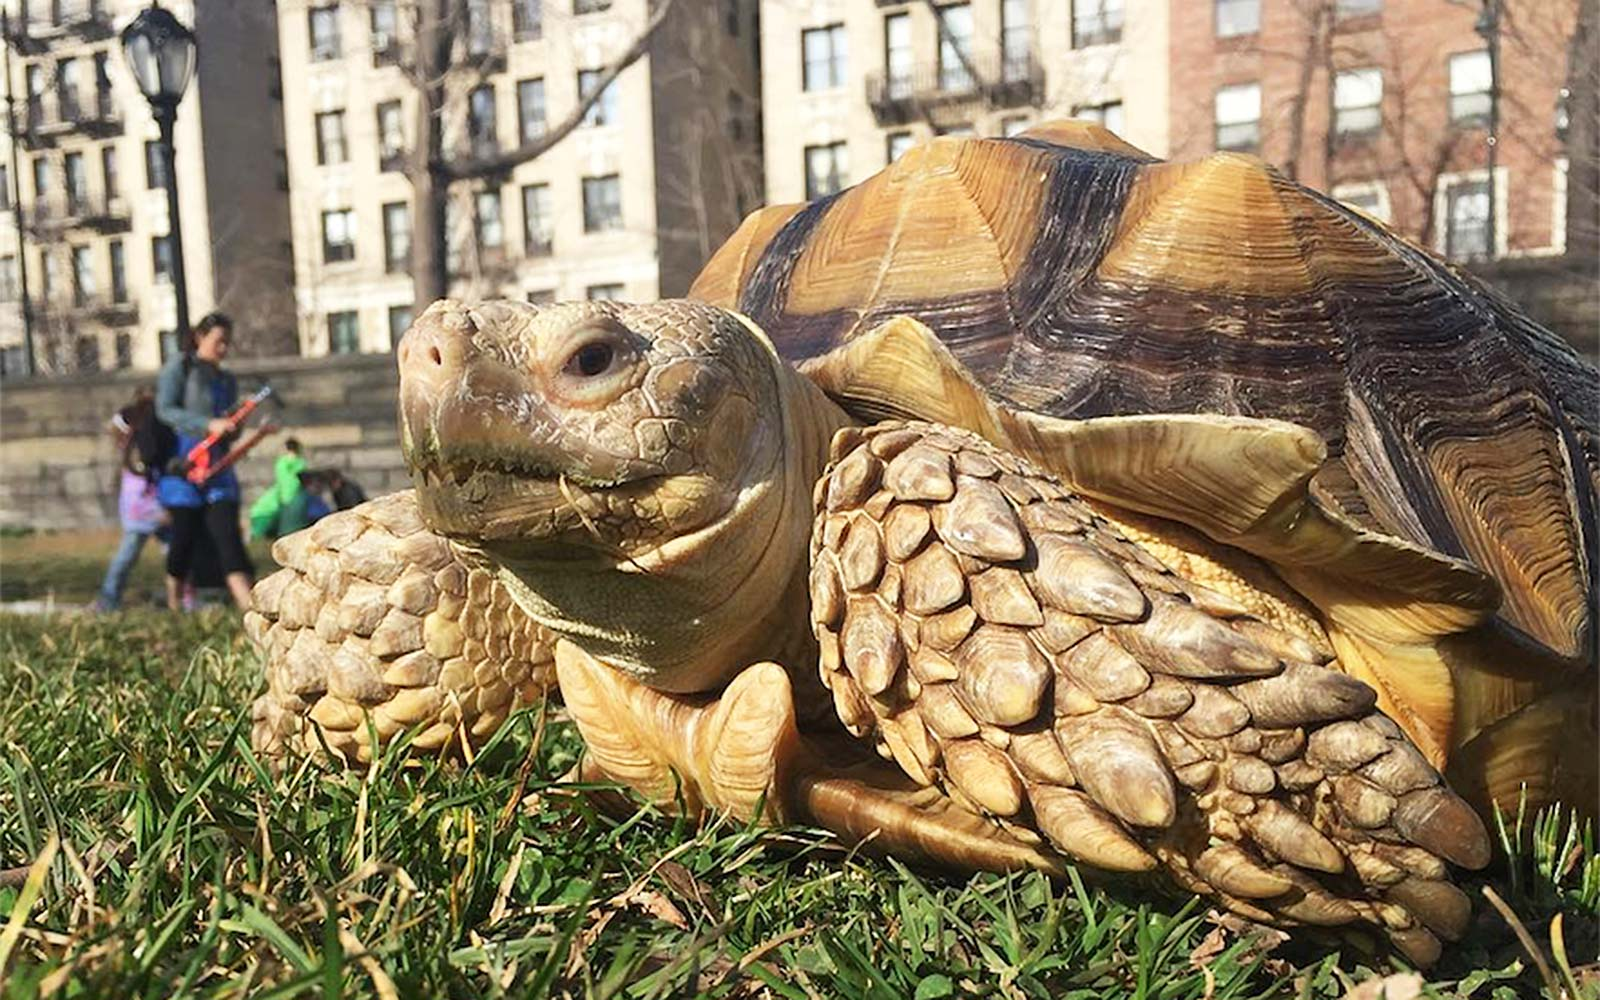 Walk Henry the tortoise in Central Park